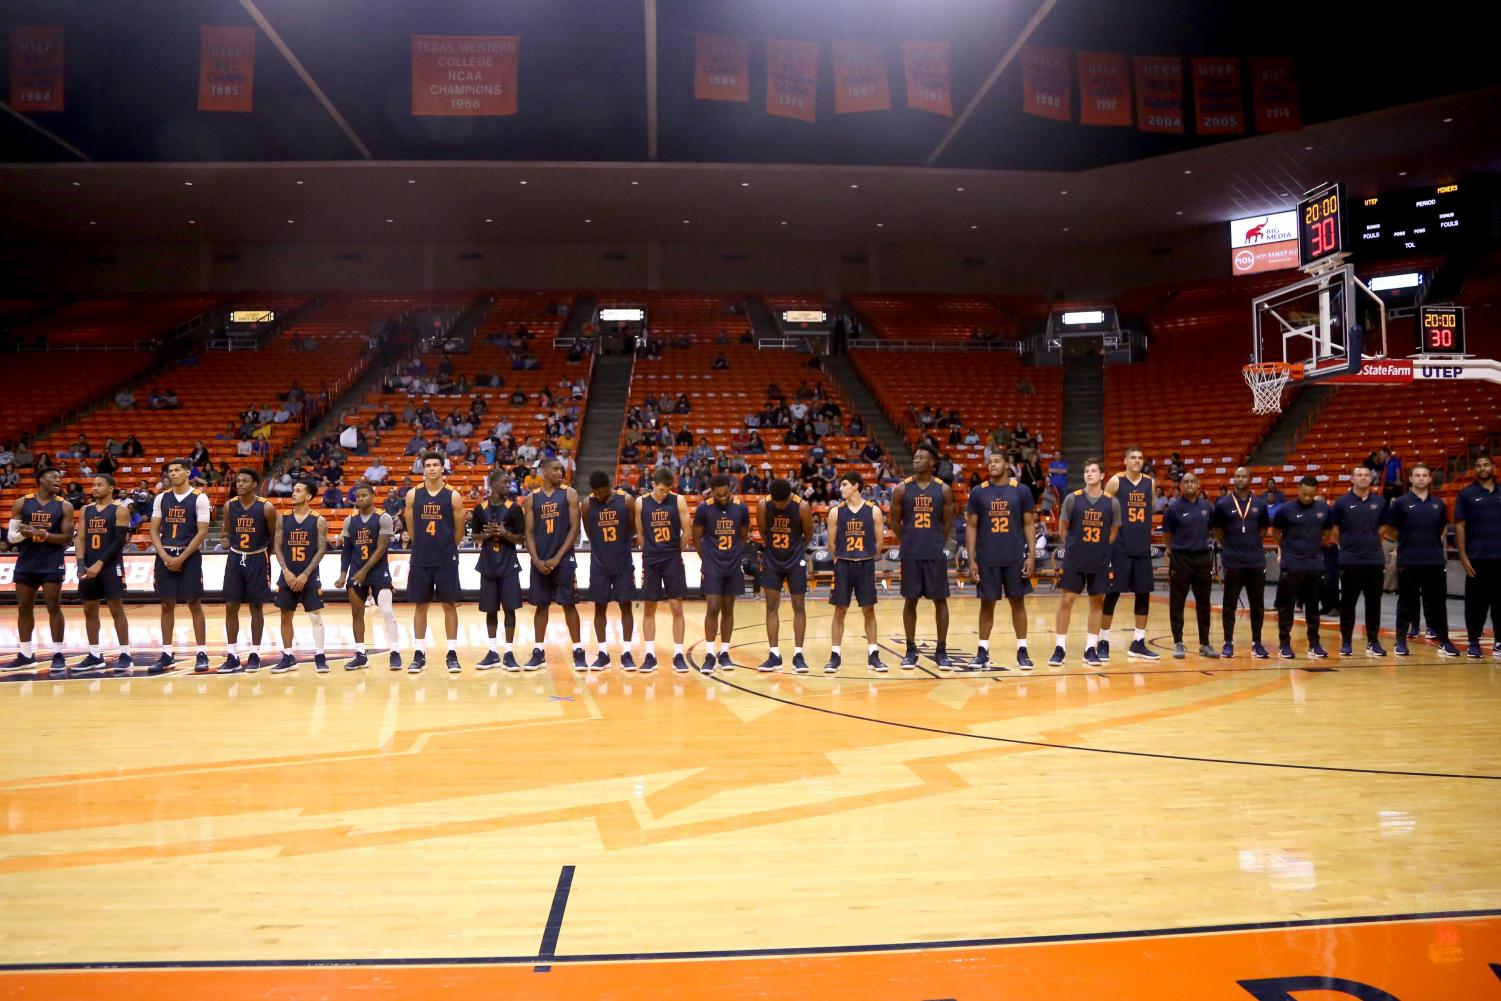 The+2018-2019+UTEP+men%27s+basketball+team+is+introduced+at+the+basketball+pre+season+showcase+at+the+Don+Haskins+Center+on+Wednesday%2C+Oct.+10.++